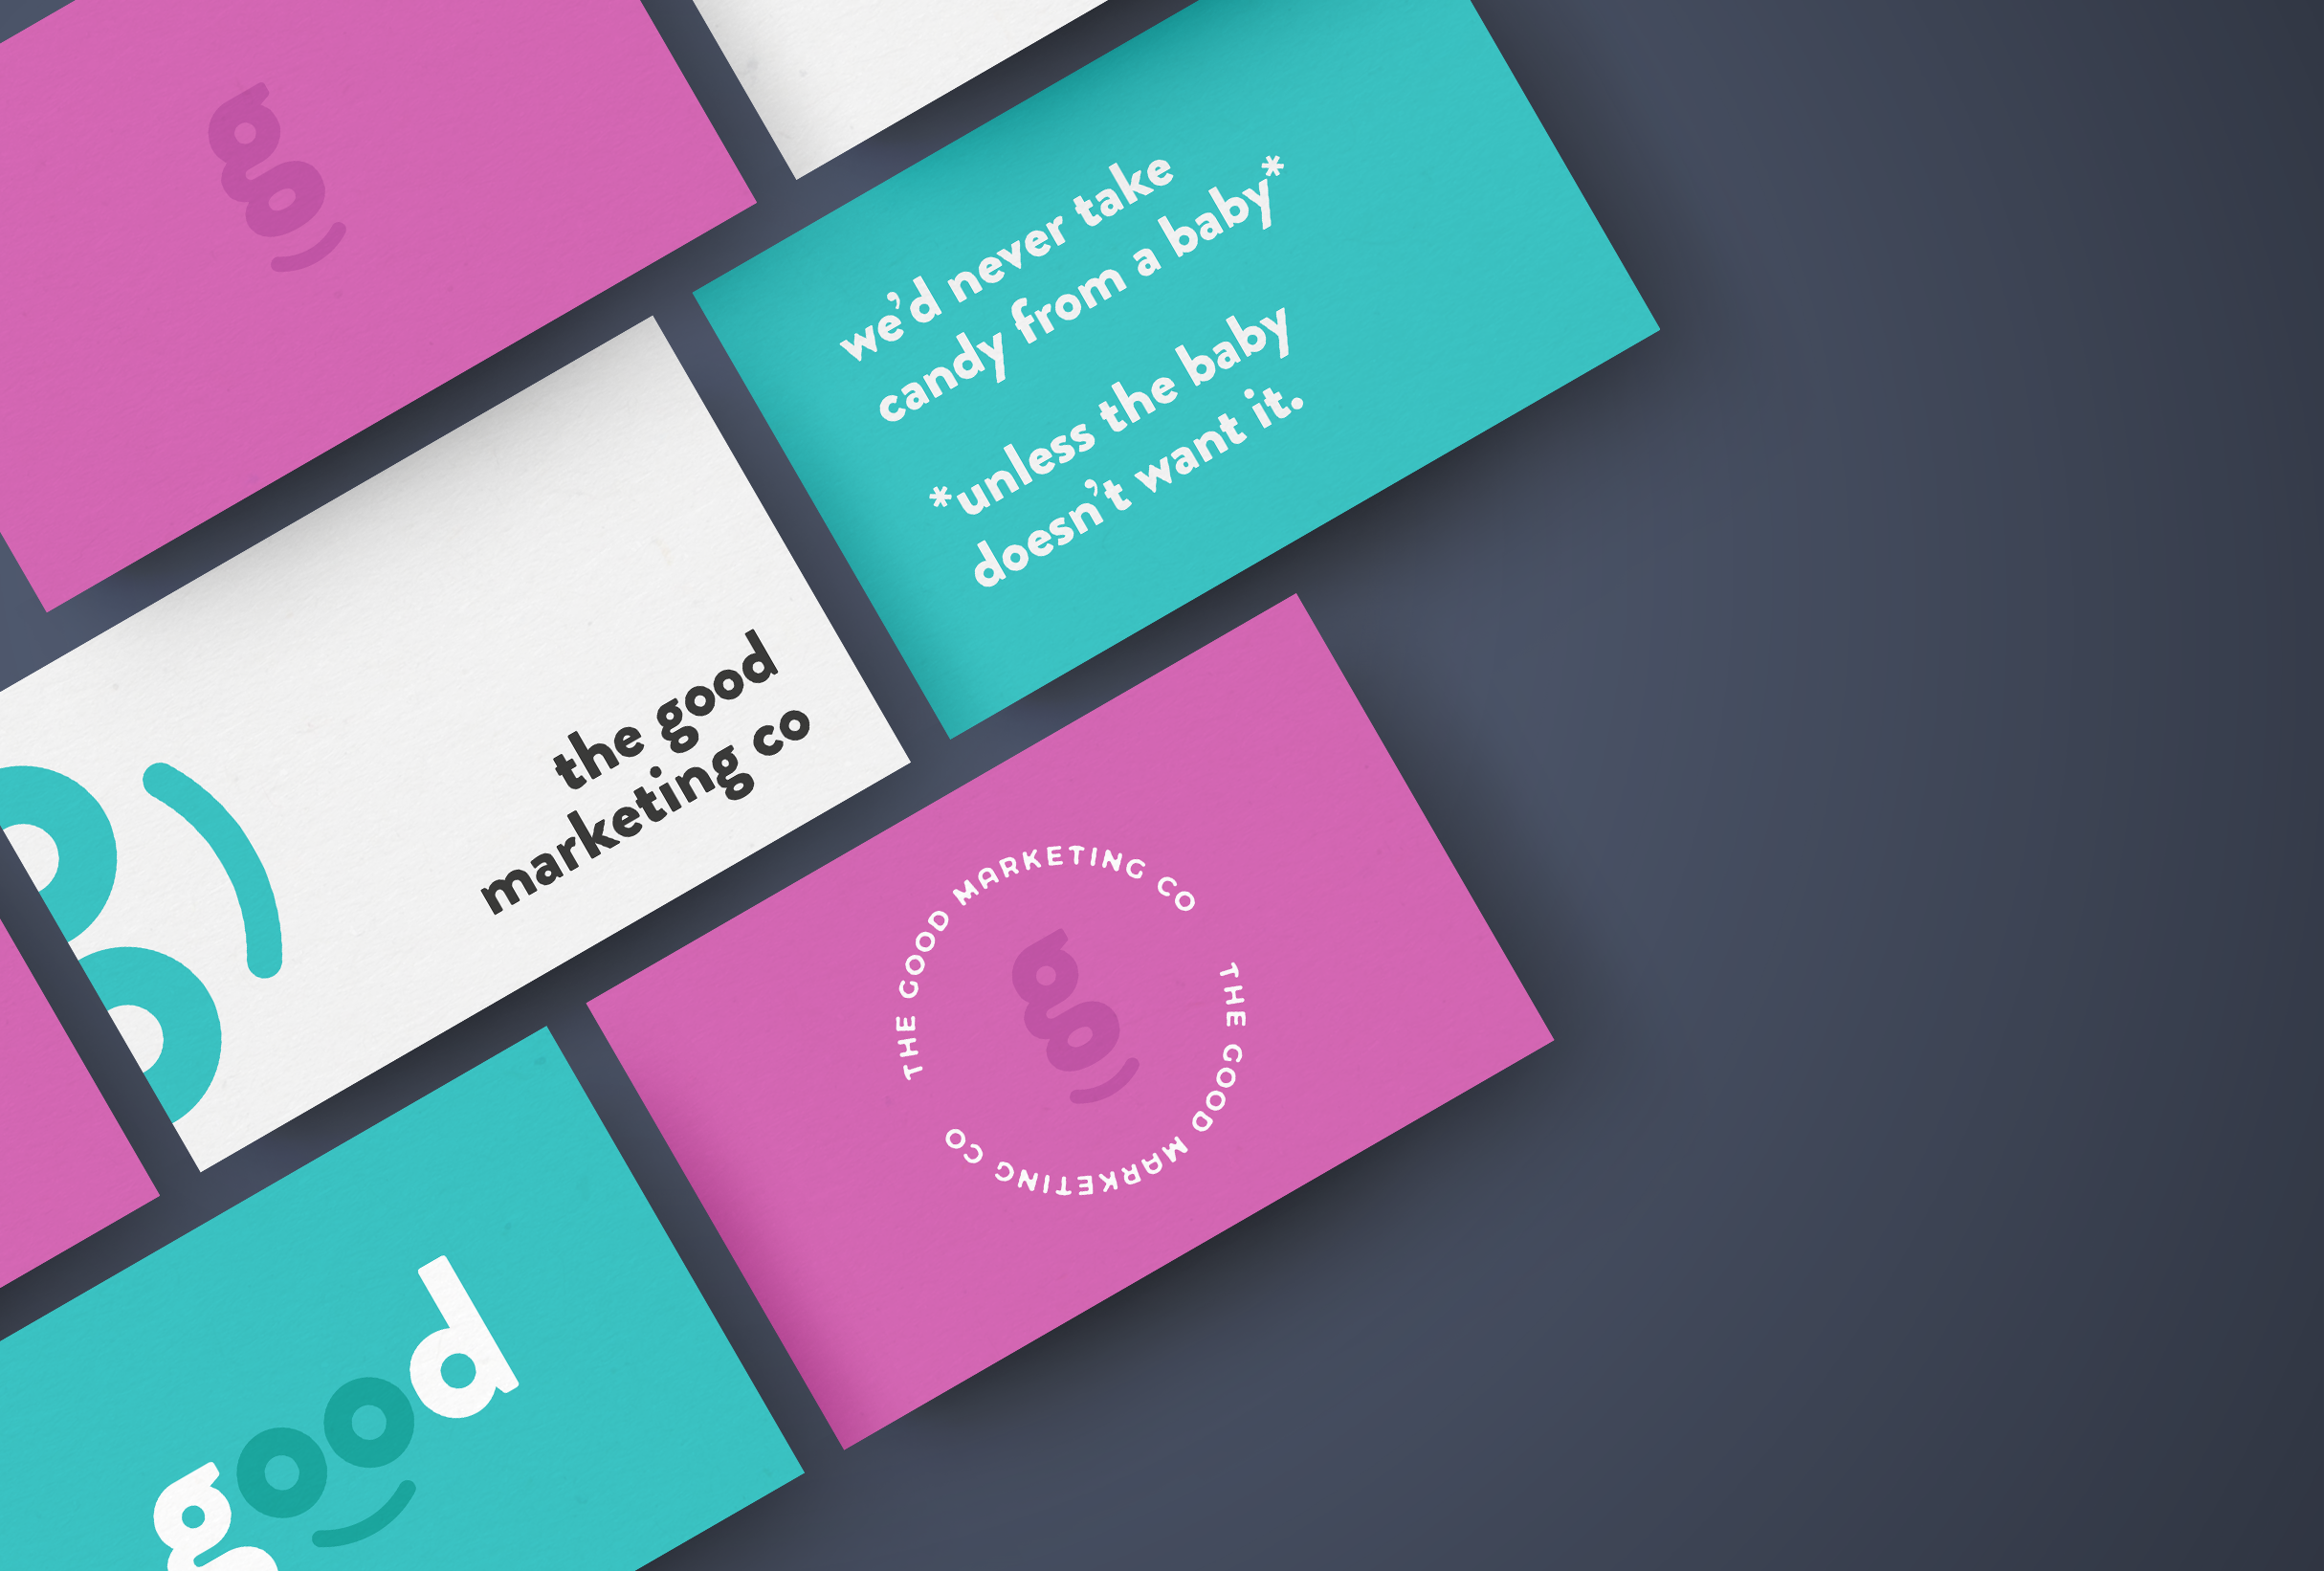 Final business card design for The Good Marketing Co, a health and wellness marketing agency with honest and ethical values - designed by Wiltshire-based graphic designer, Kaye Huett